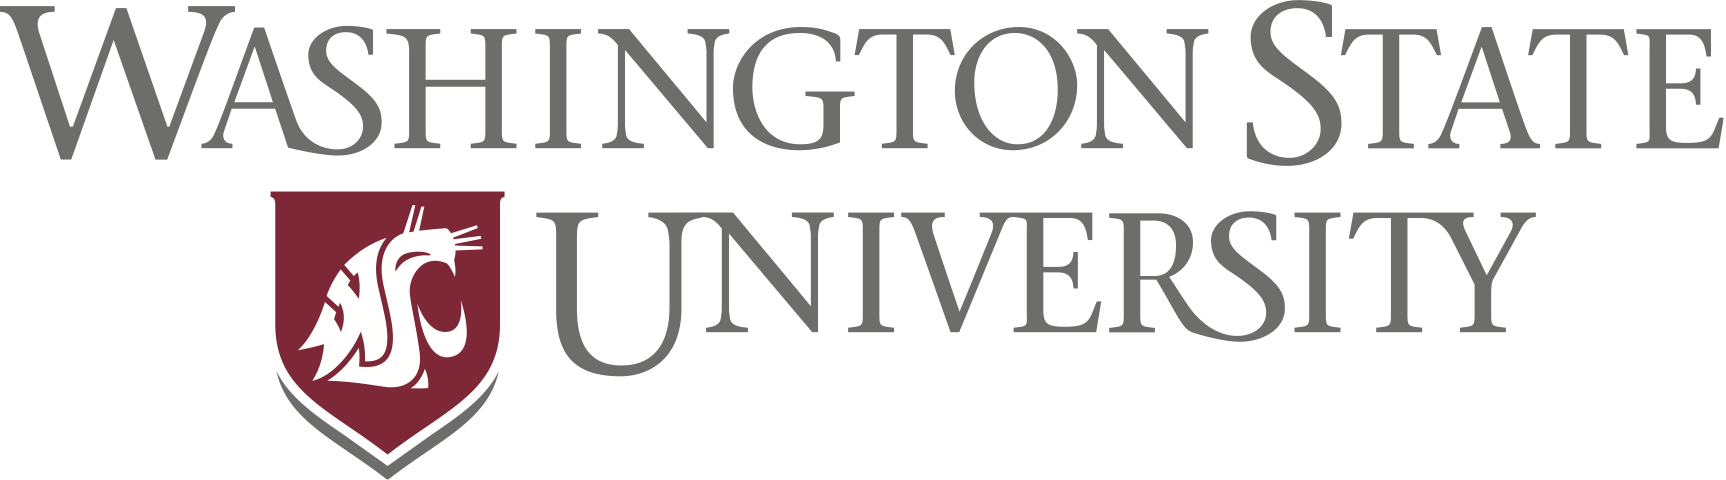 Washington State University Center for Reproductive Biology